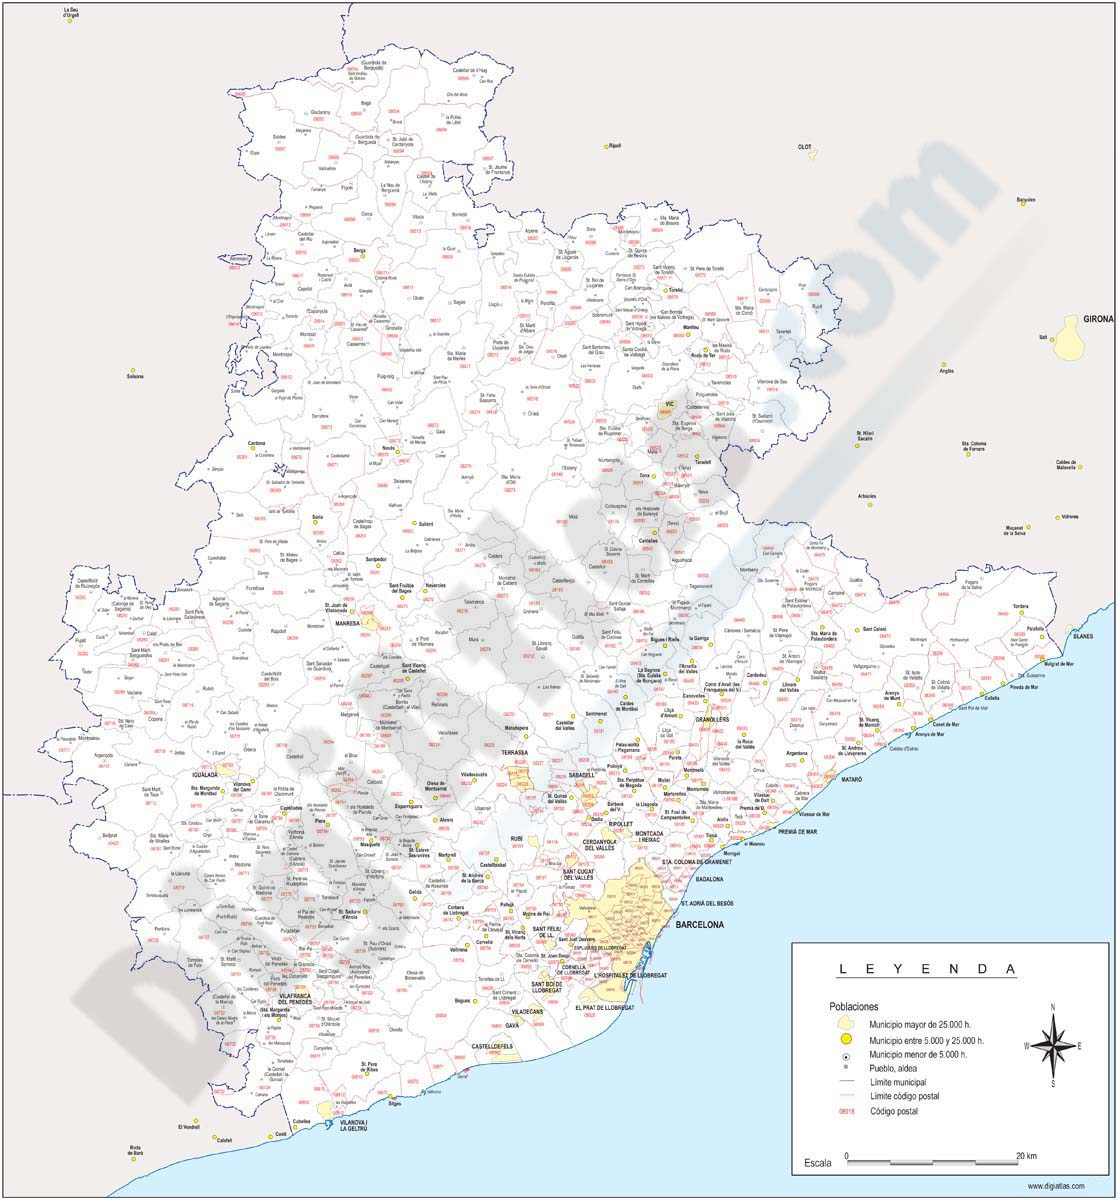 Maps of Spanish Provinces with Postal Codes